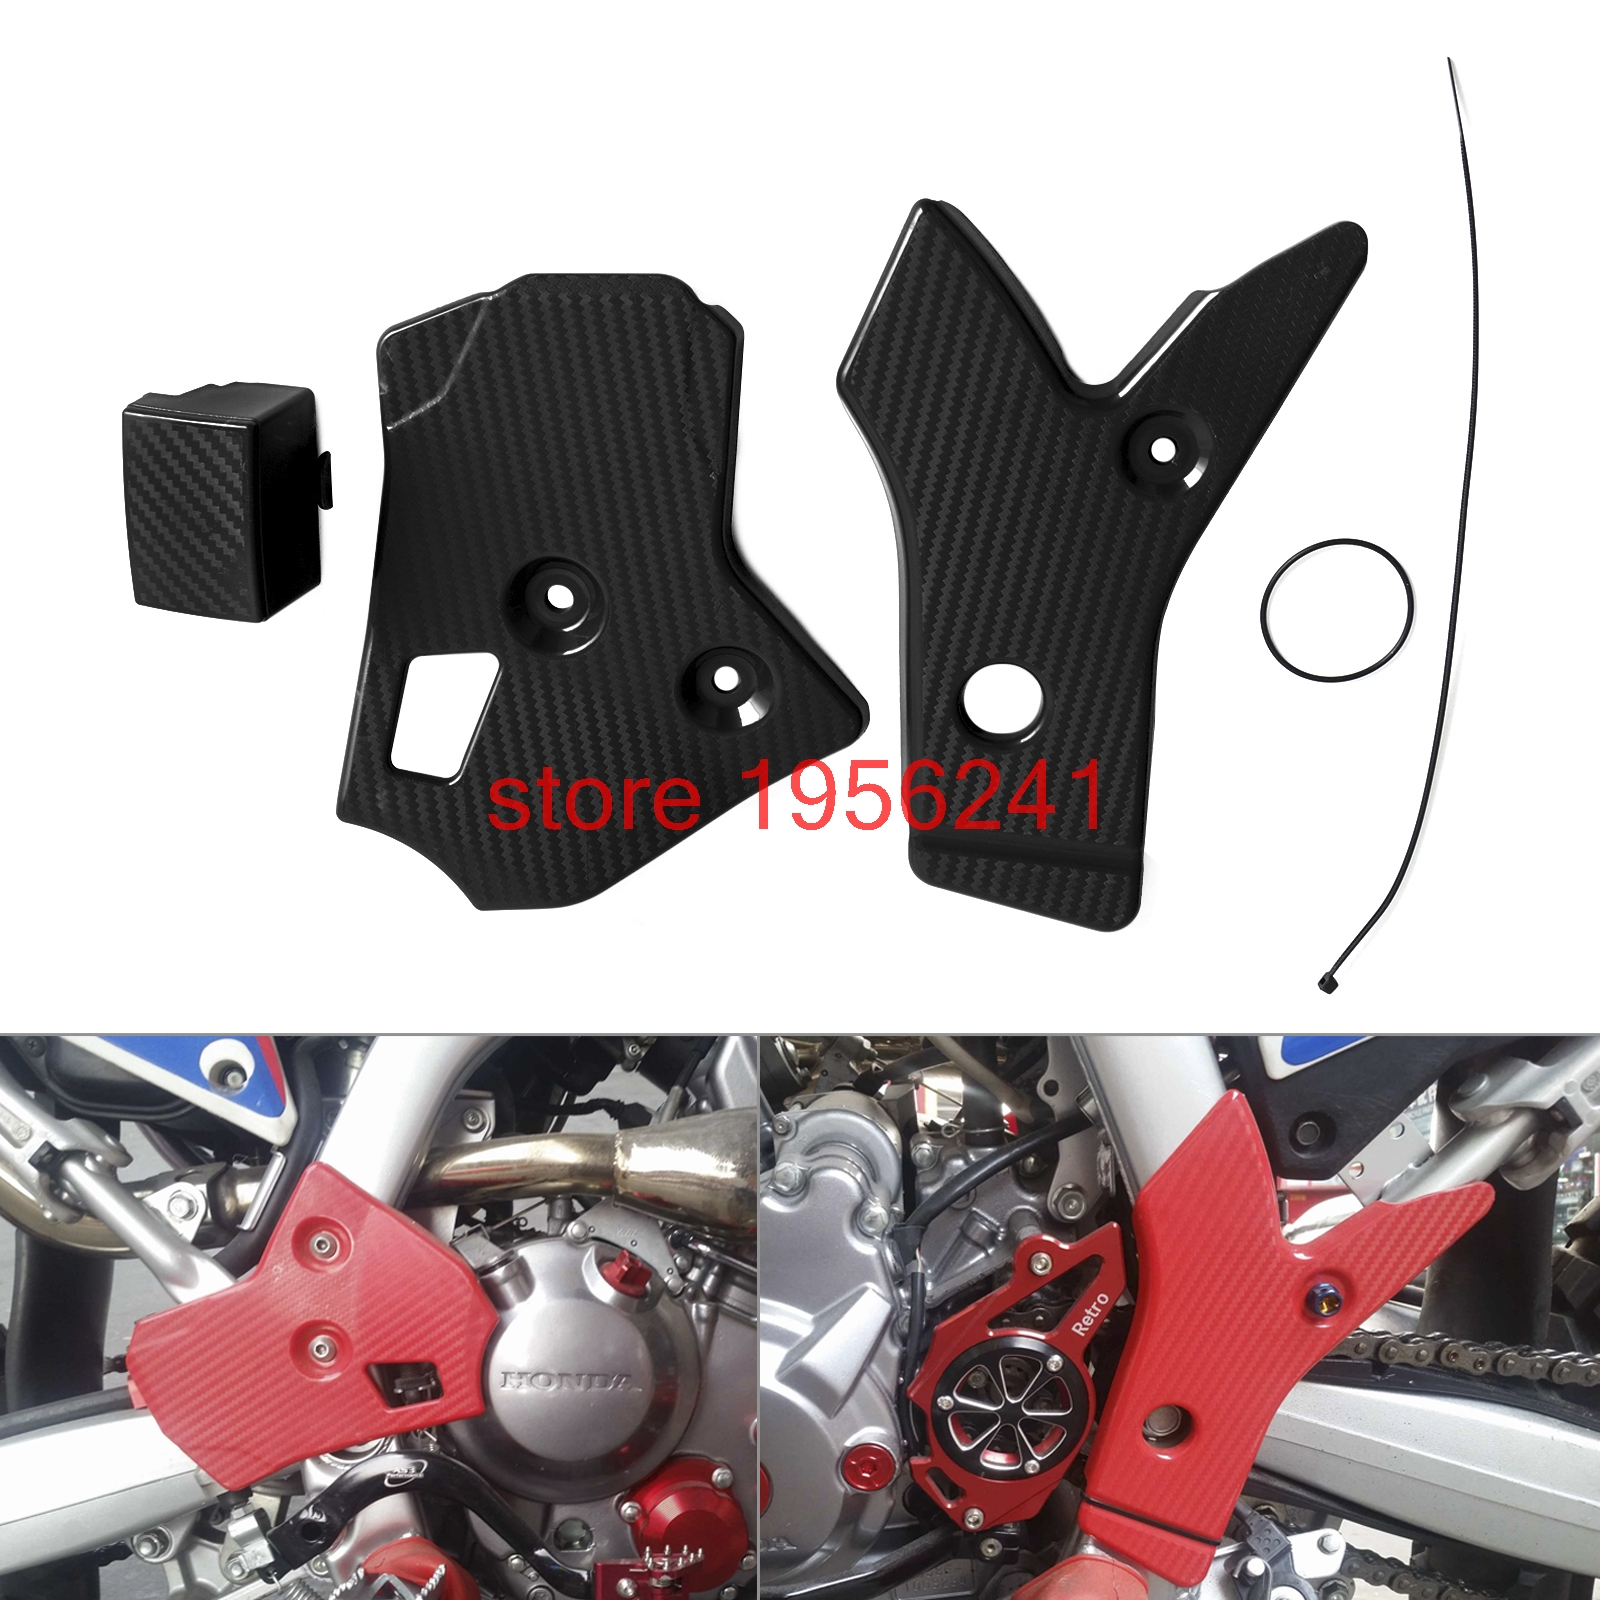 Motorcycle Frame Protector Cover Guard For Honda CRF250L CRF250M 2012 - 2015 2013 2014 Dirt Bike CRF250 L/M motorcycle radiator grill grille guard screen cover protector tank water black for bmw f800r 2009 2010 2011 2012 2013 2014